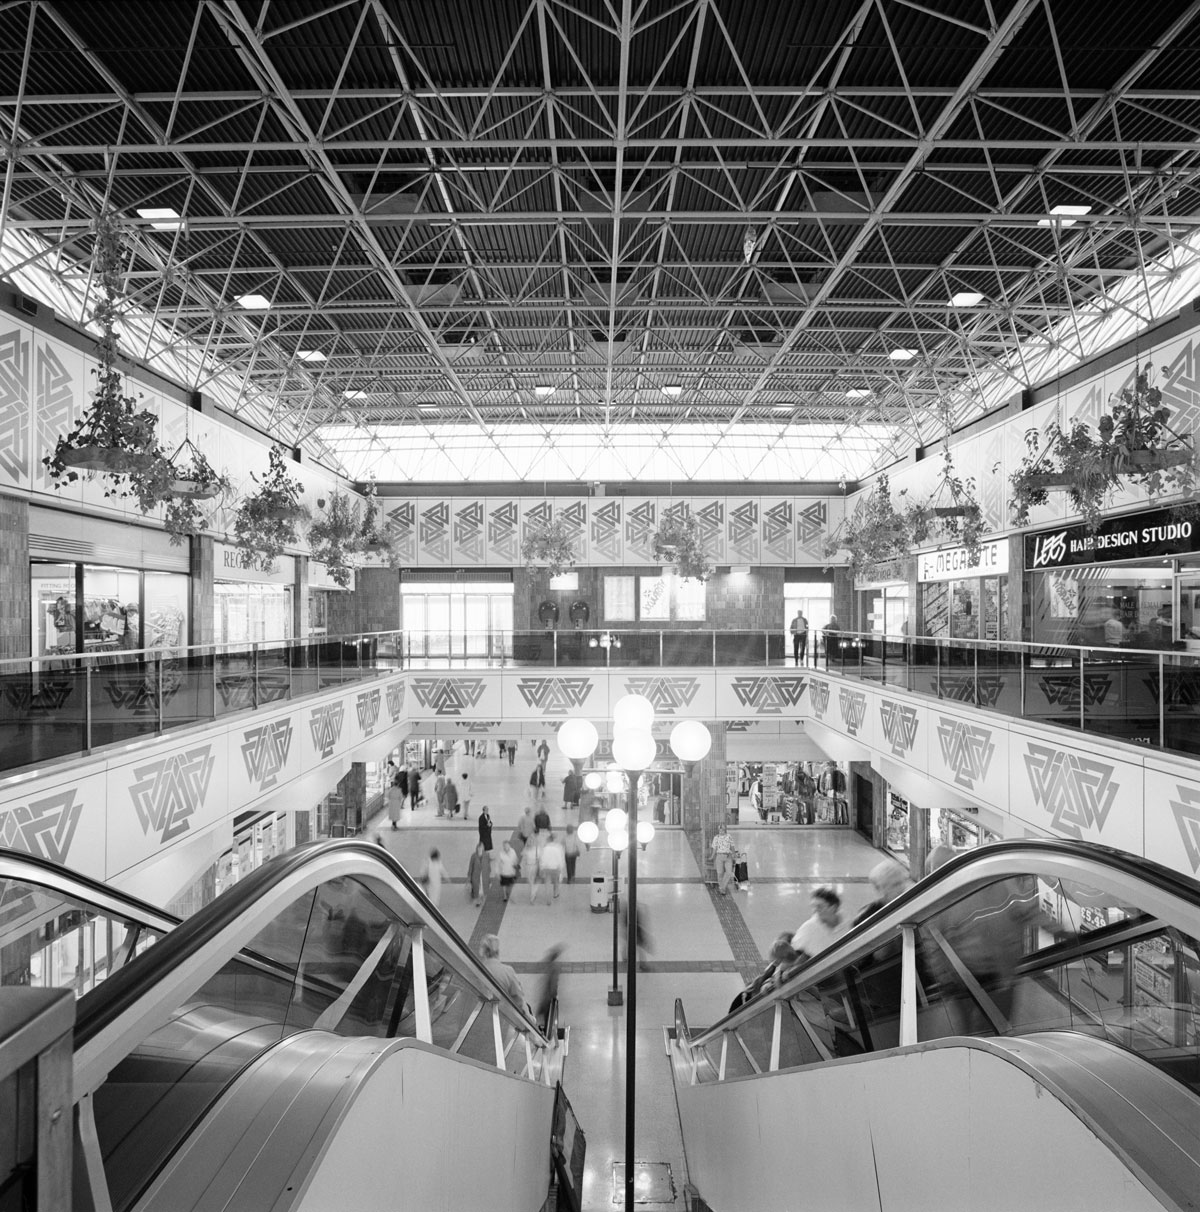 Black and white view looking down from the top of an escalator showing a Postmodern shopping centre with open ceiling structure and geometric decorative panels